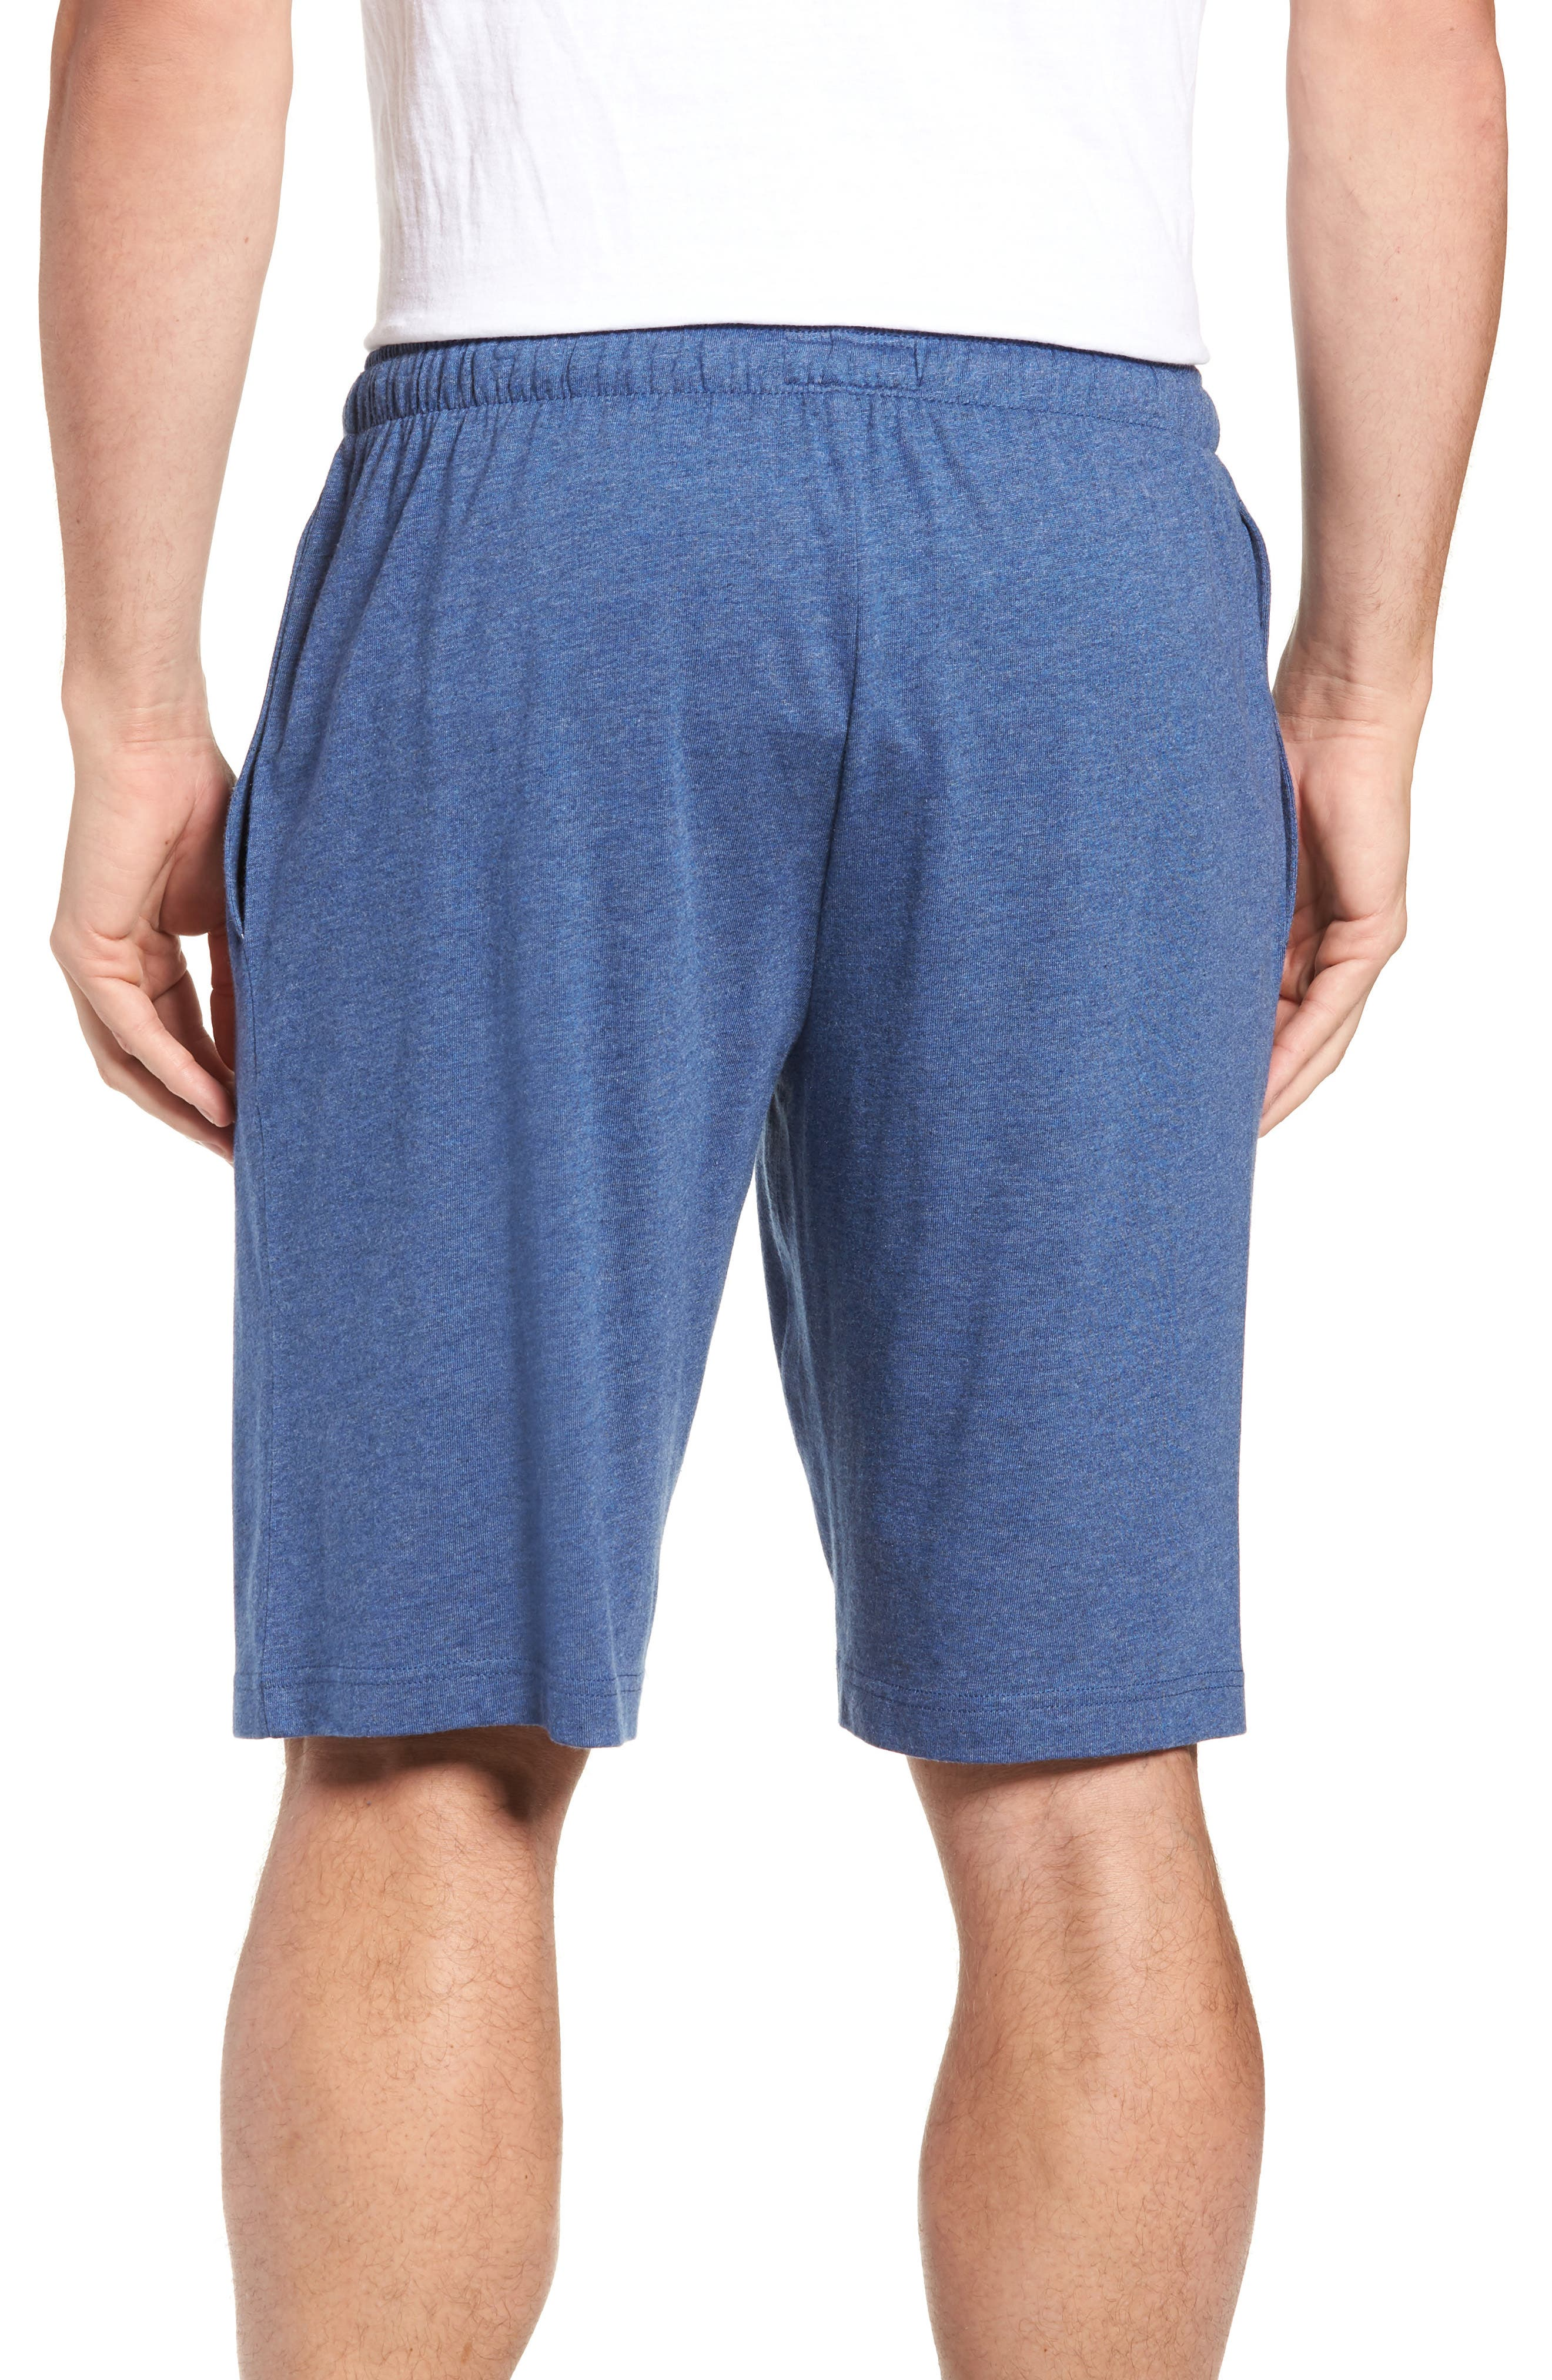 Supreme Comfort Lounge Shorts,                             Alternate thumbnail 2, color,                             402